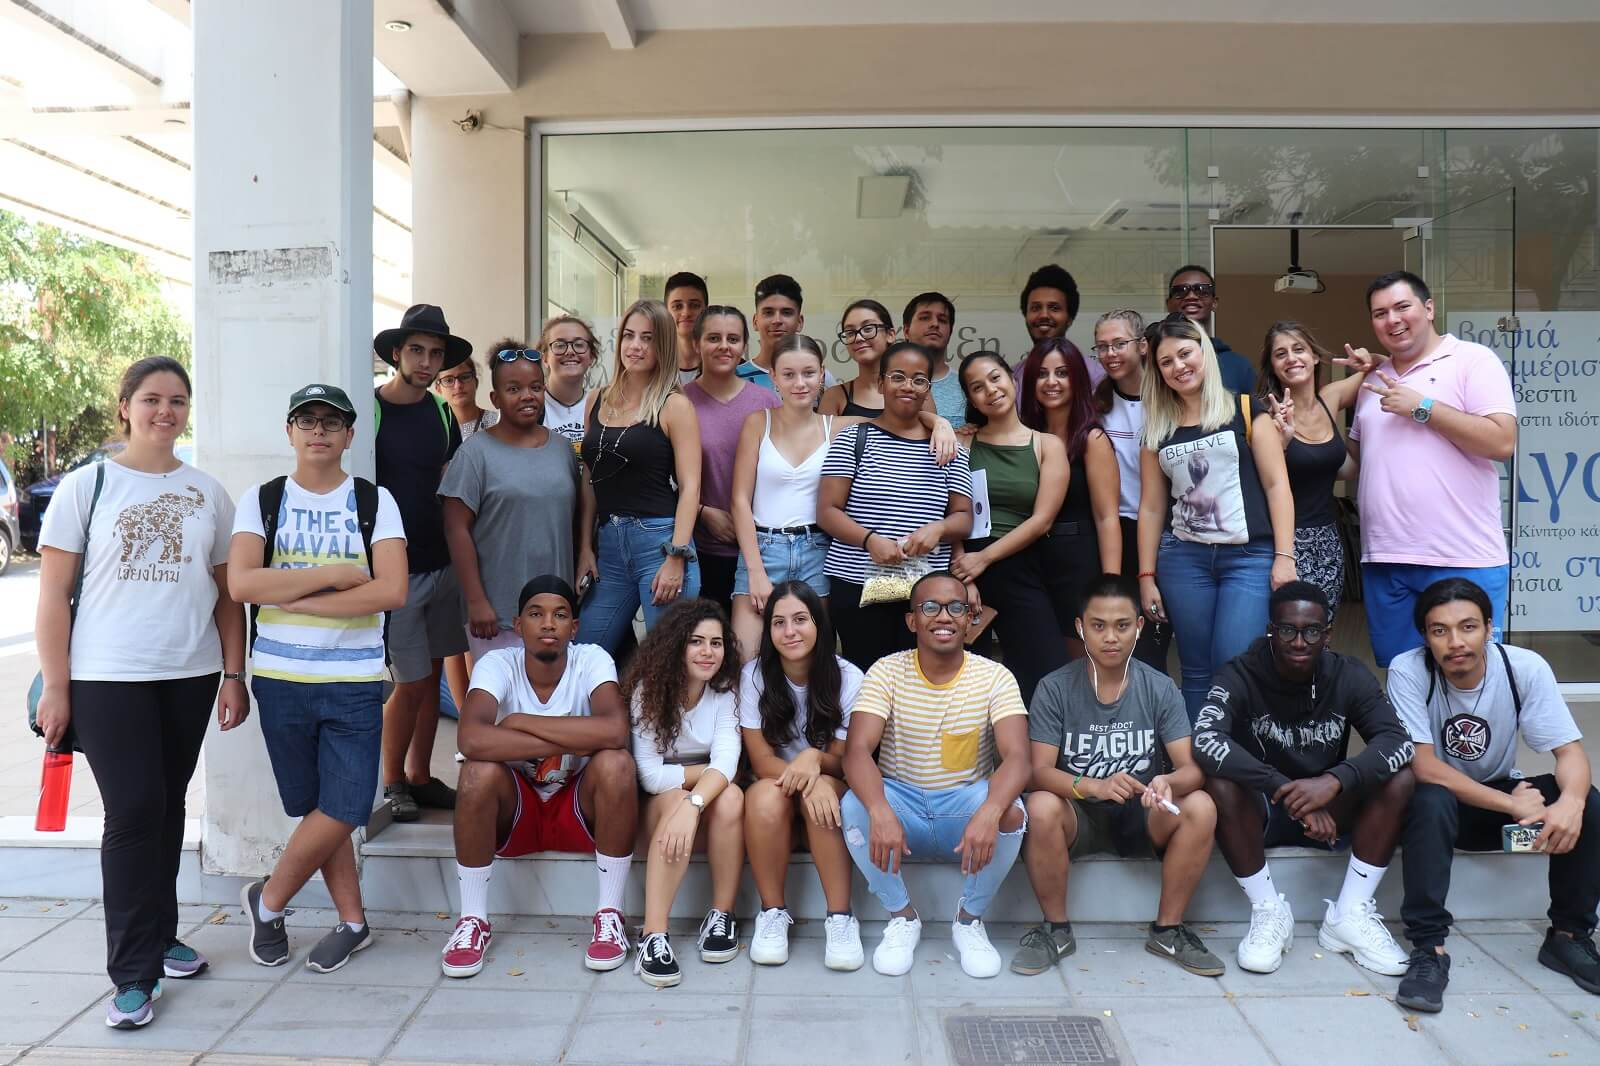 Group photo at the northern greece youth conference